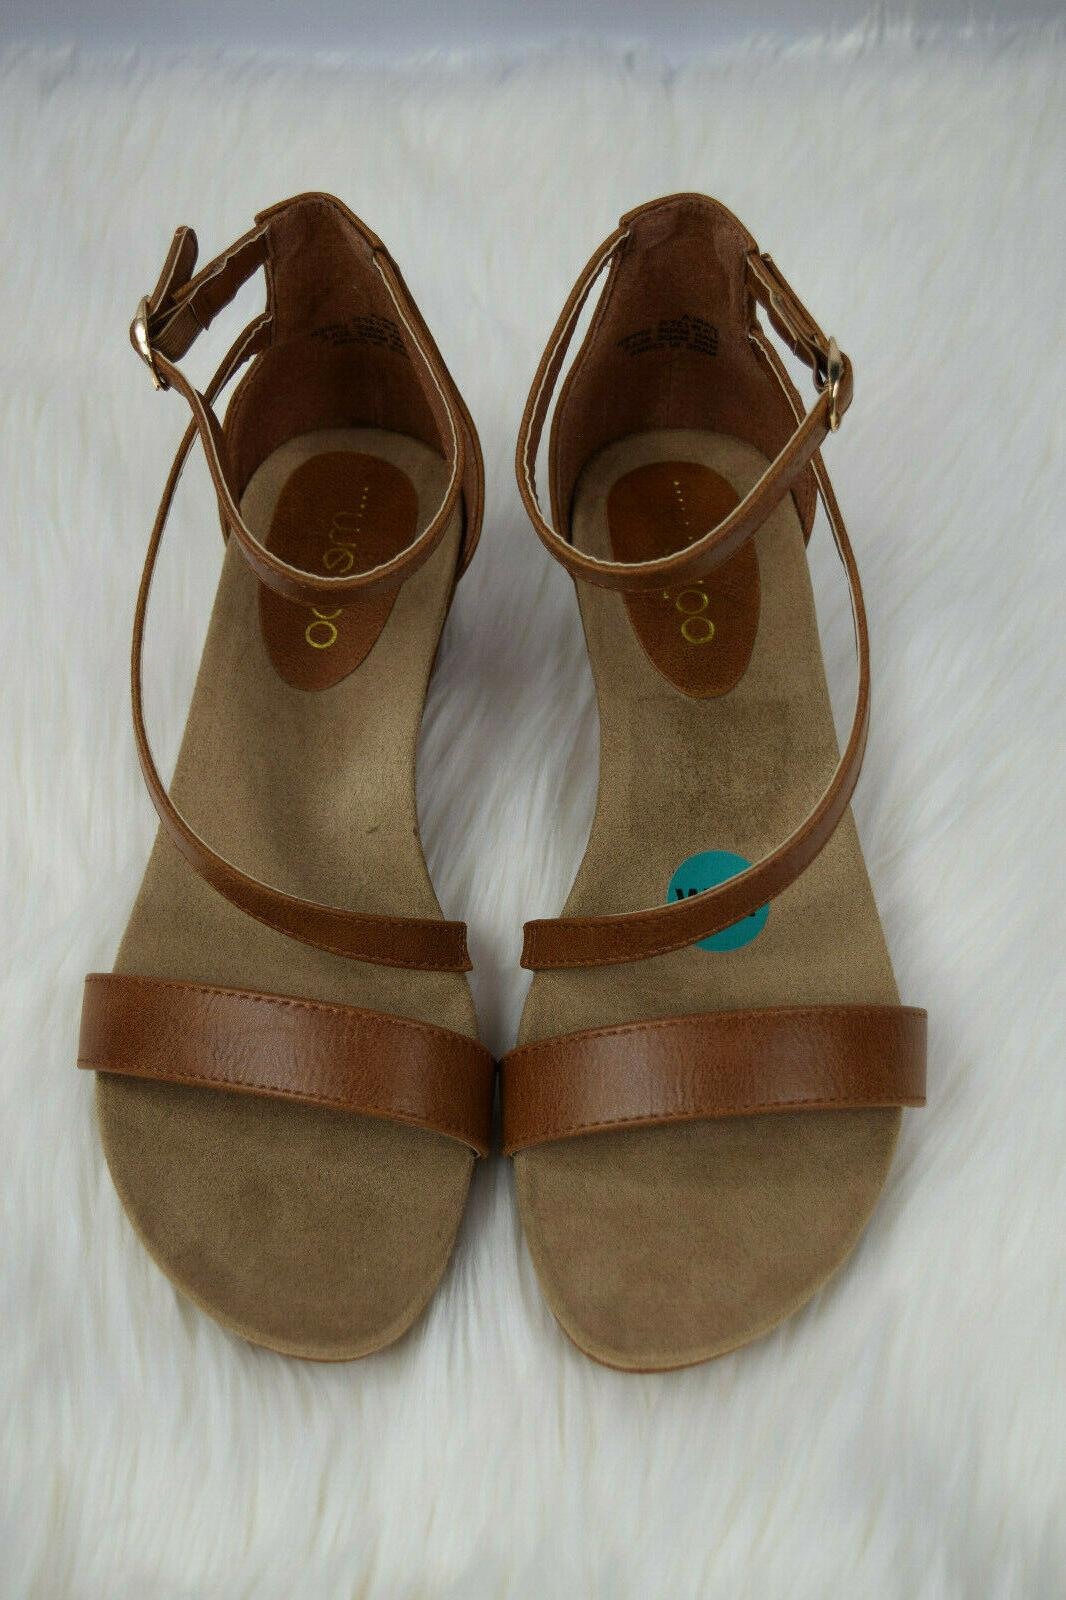 NEW Women's MARLA Wedge Strappy Size 7.5